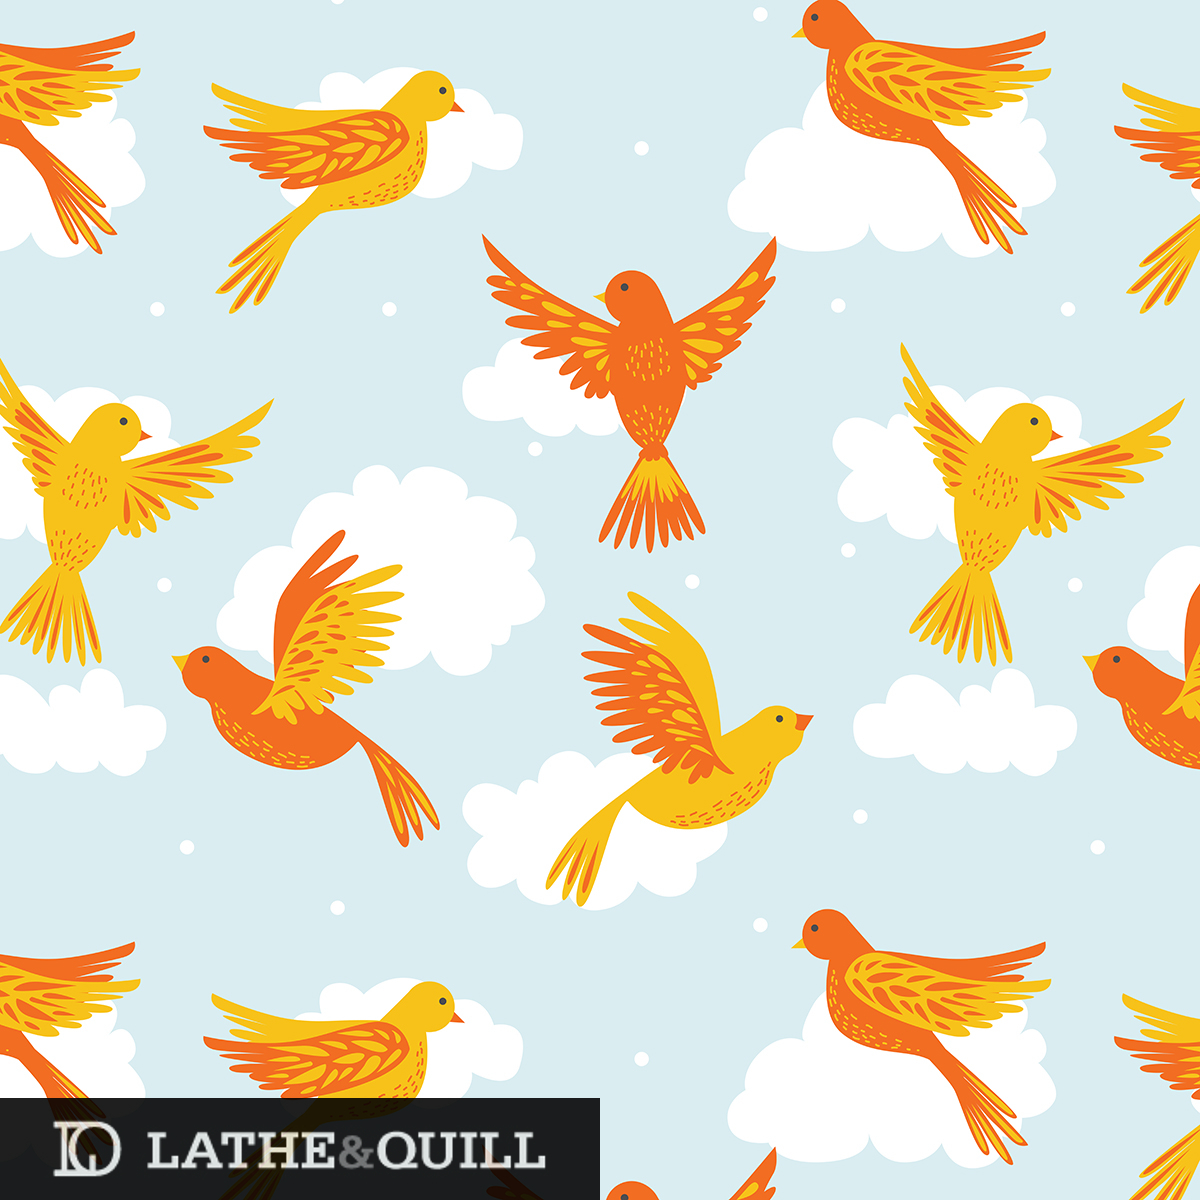 Vector illustration of birds on a blue sky with fluffy white clouds